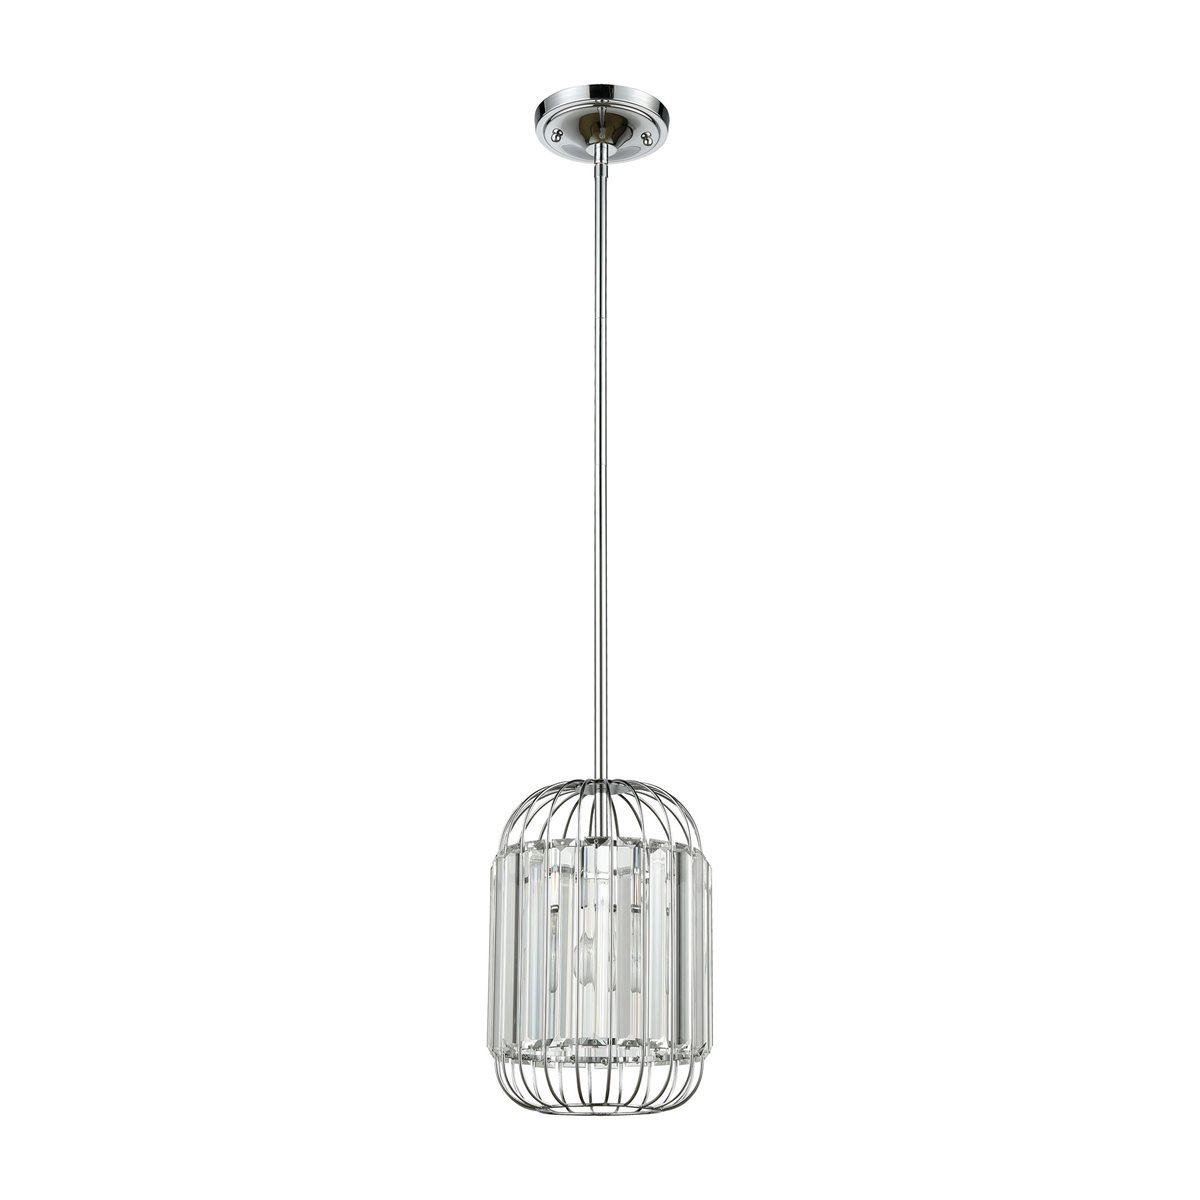 Beaumont 1 Pendant in Polished Chrome design by BD Fine Lighting